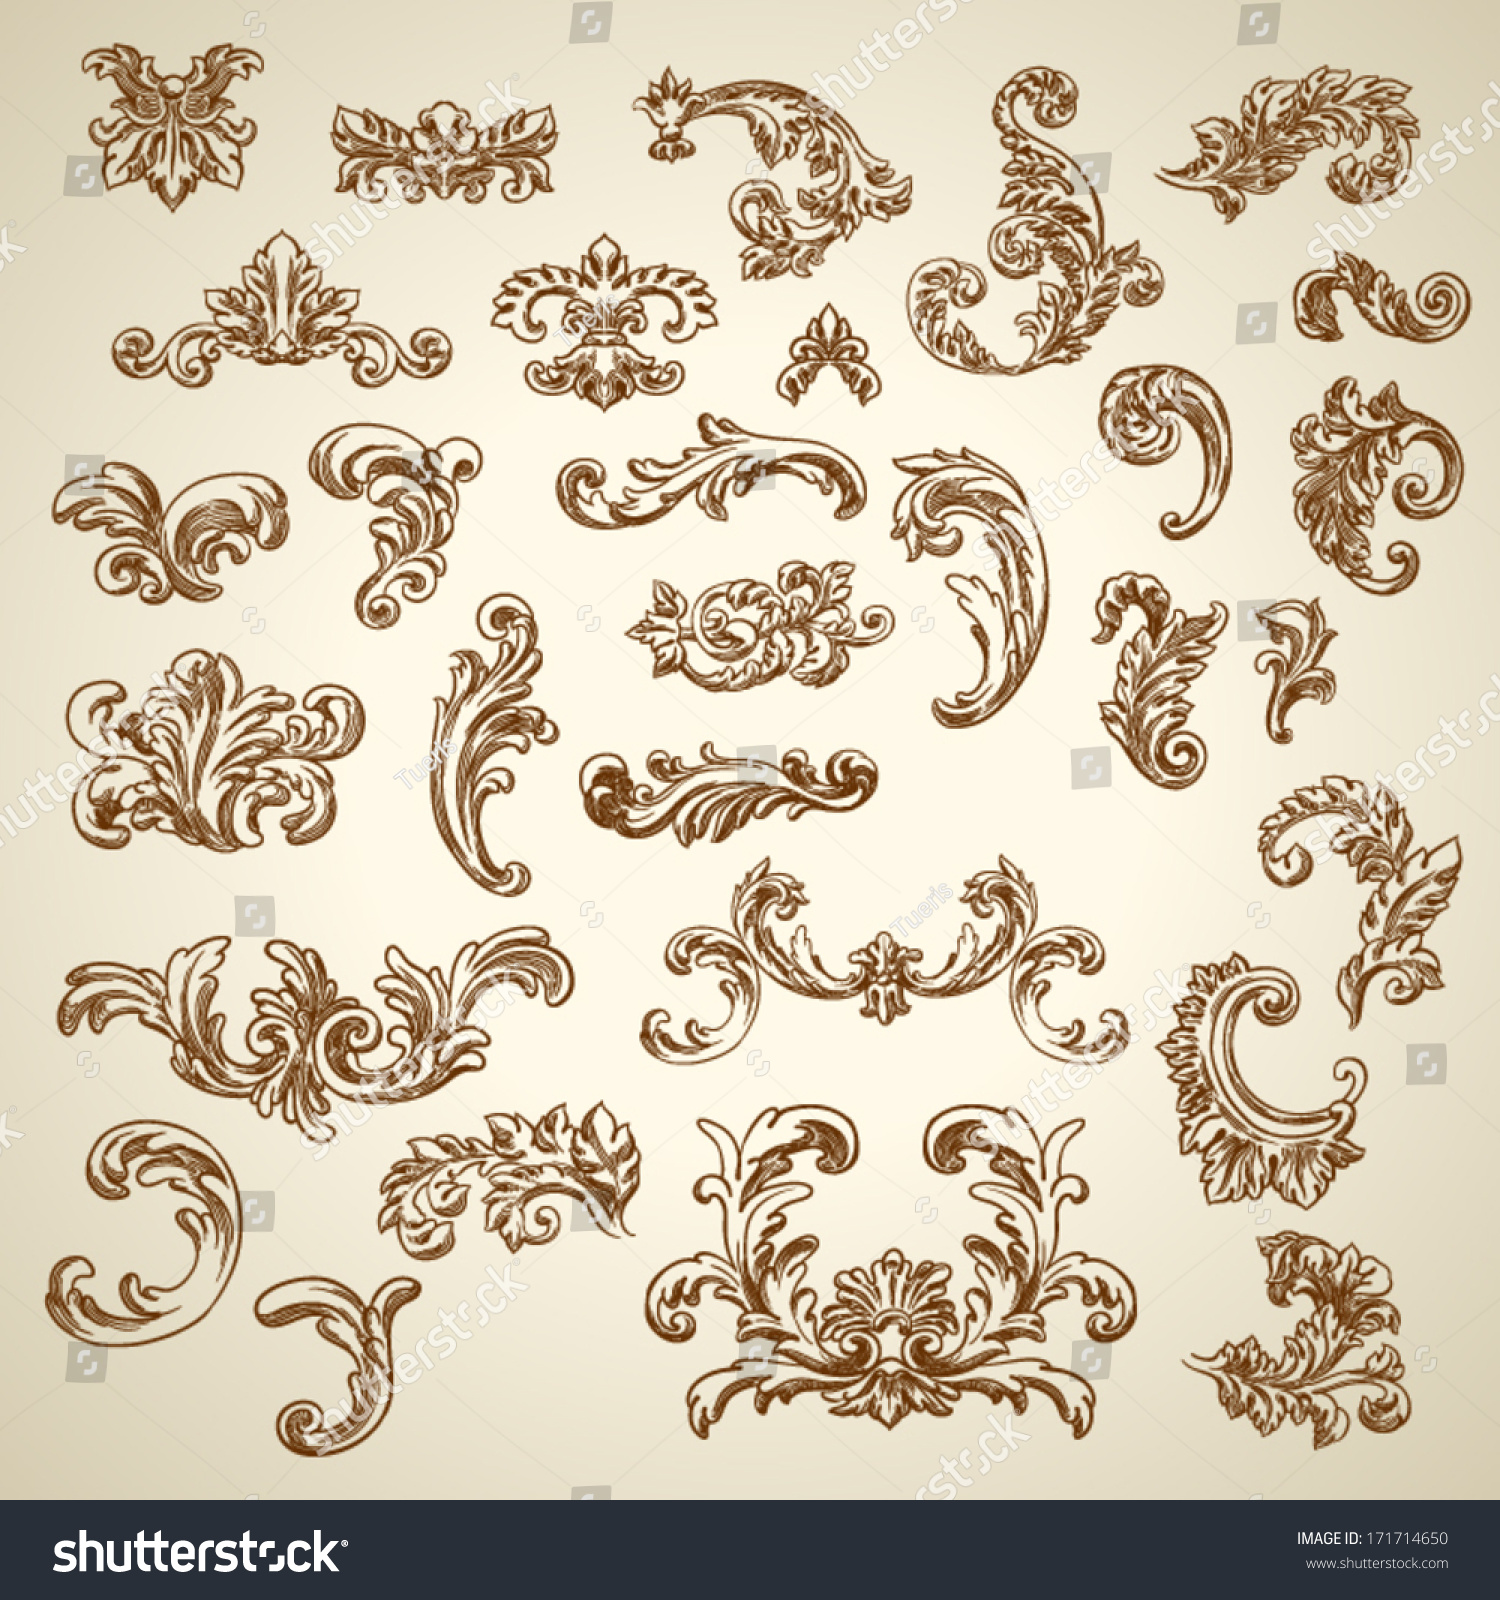 Antique Scrollimgs: Scroll Filigree Gallery